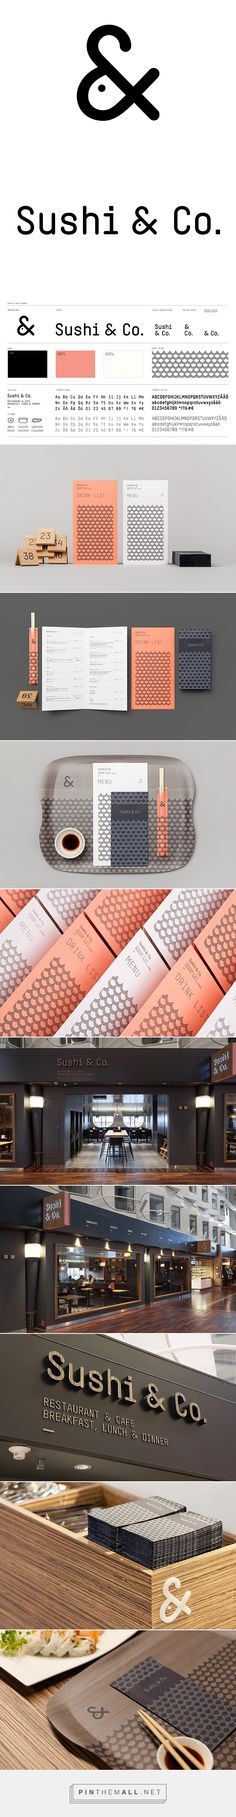 Great Branding - Sushi & Co. #logo #branding | pinned by www.amgdesign.nz